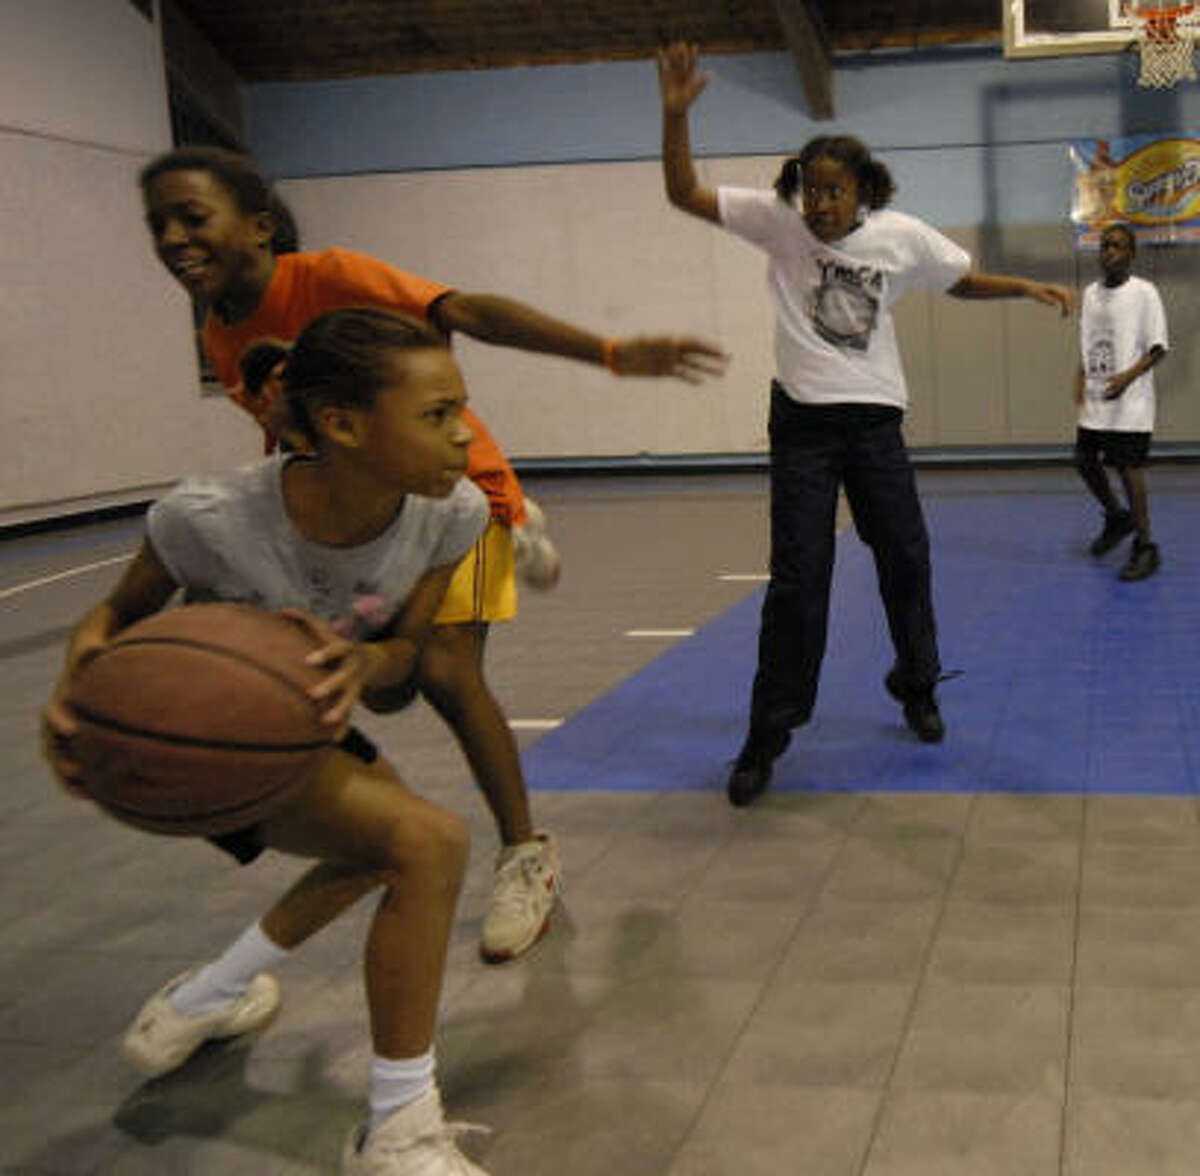 Without a YMCA building, the South Central basketball team practices at a city park gym.